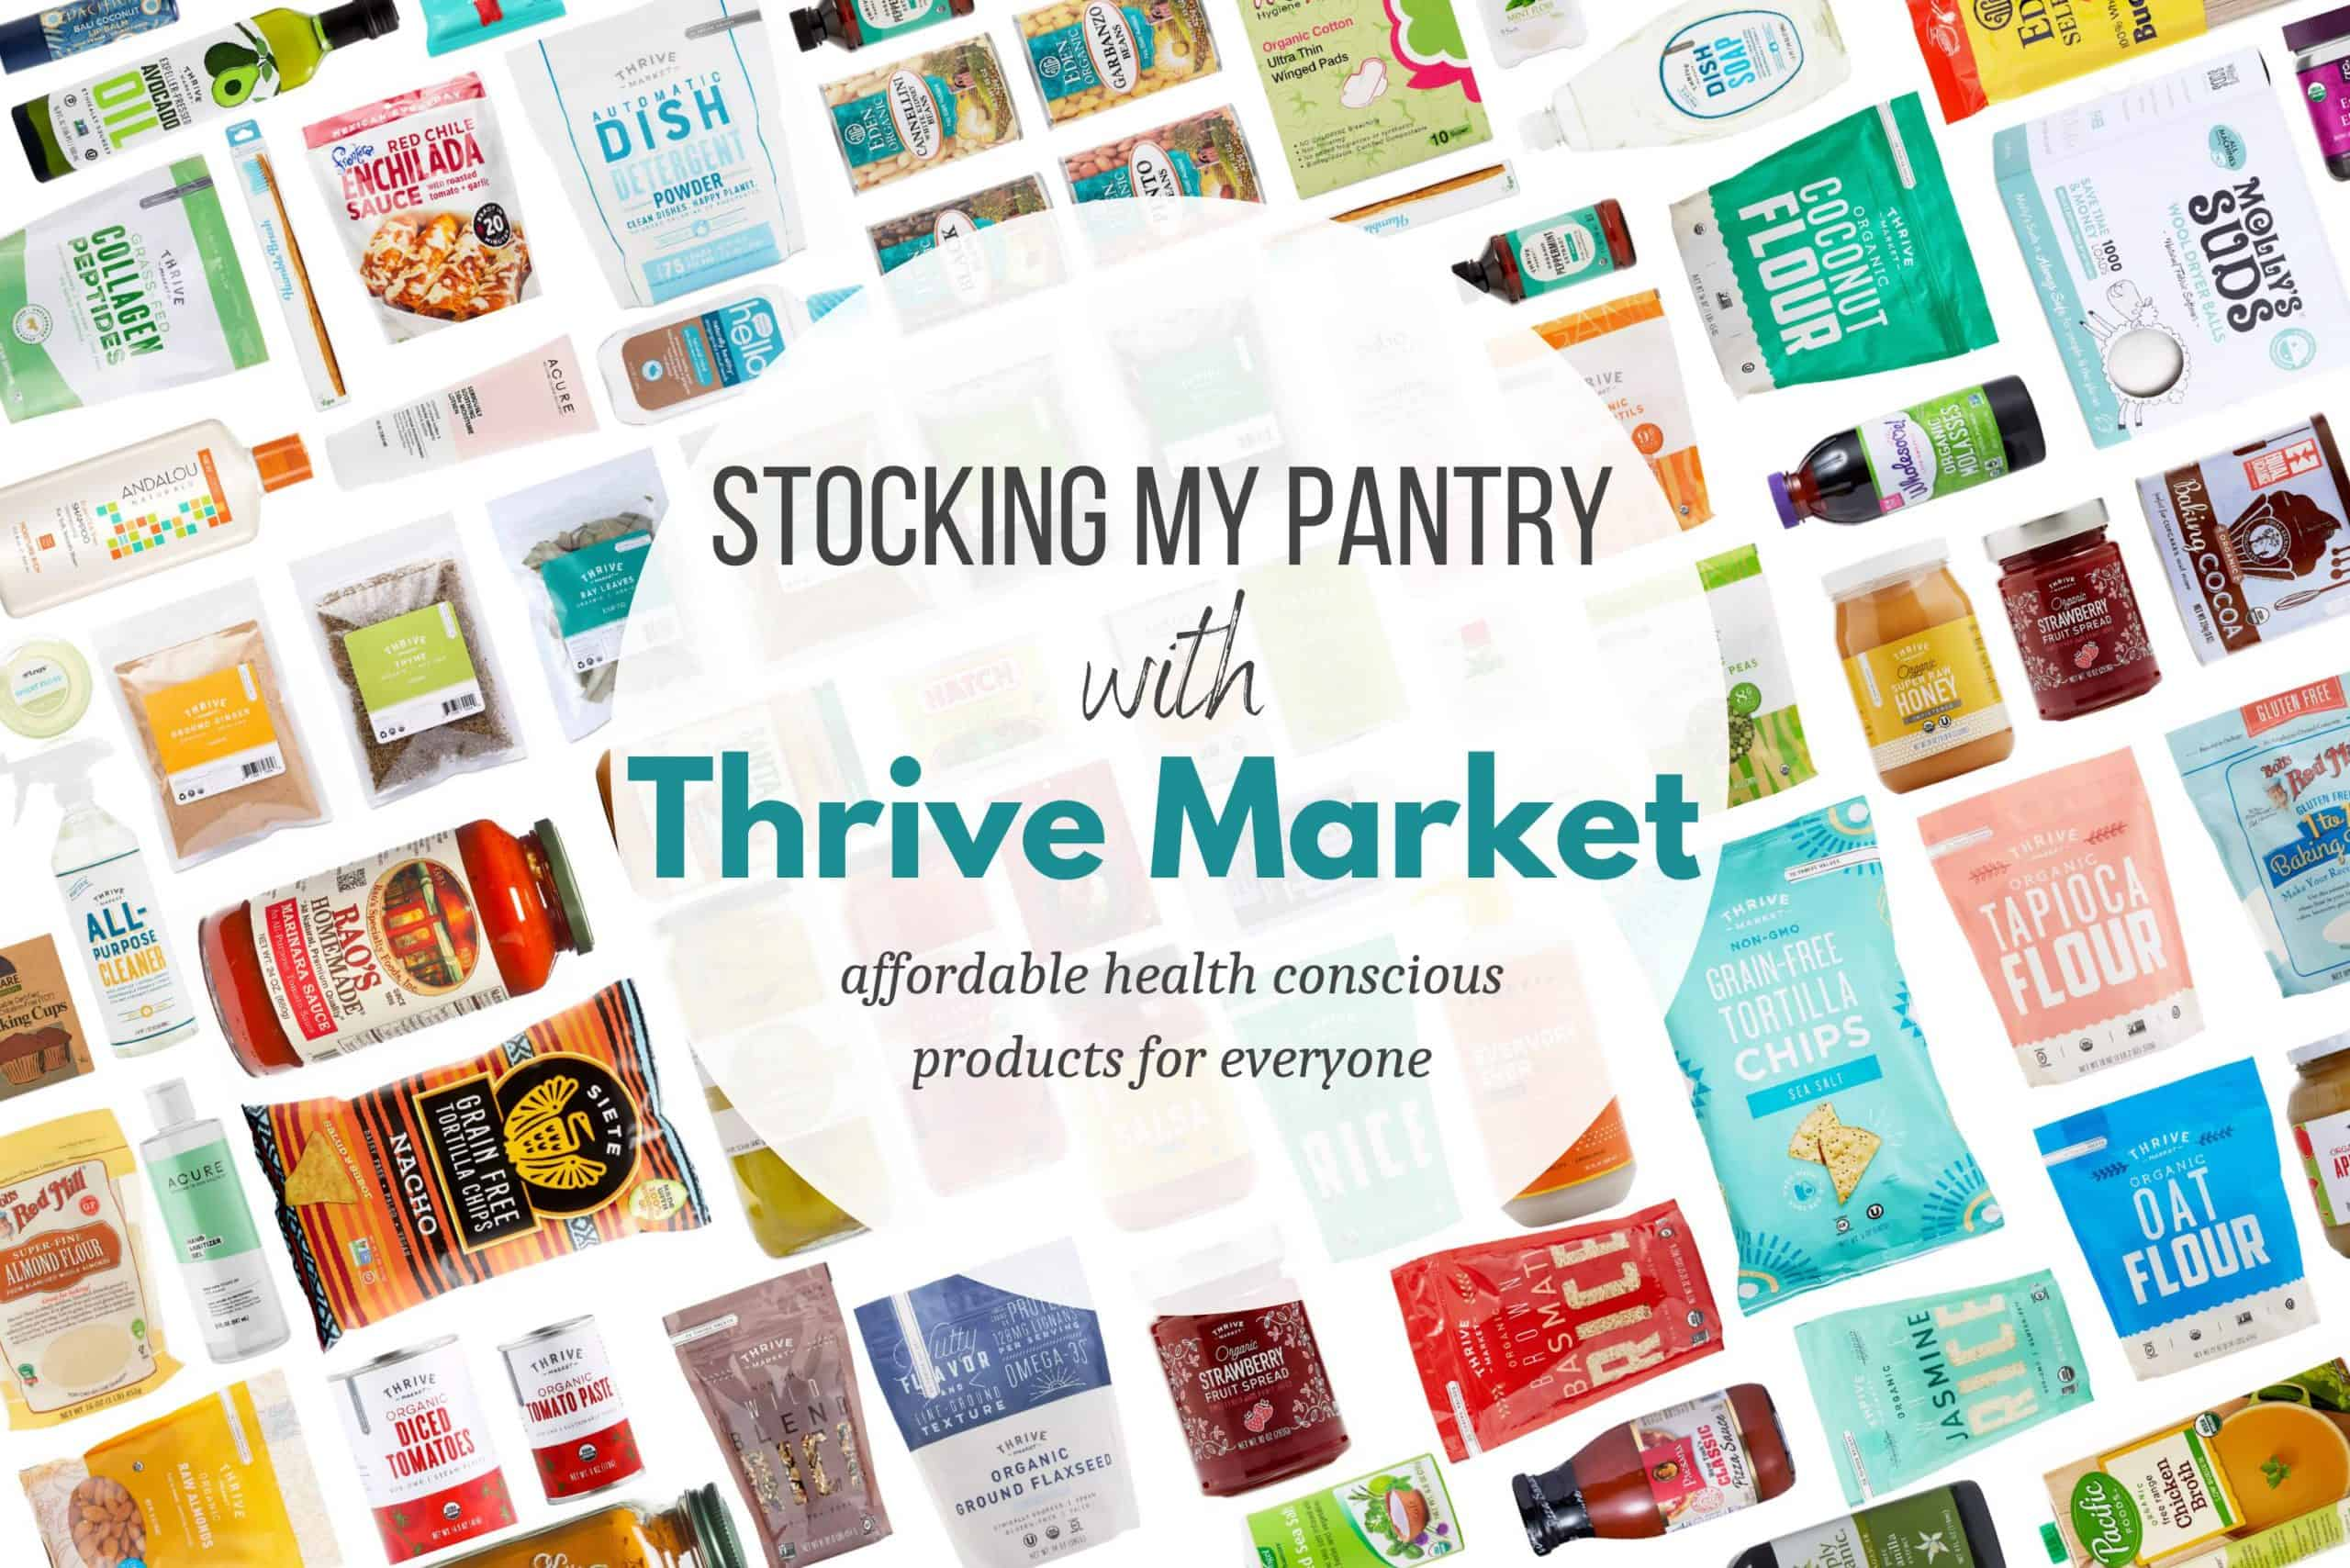 Stock Your Pantry With Thrive Market Goods Images of Grocery Products